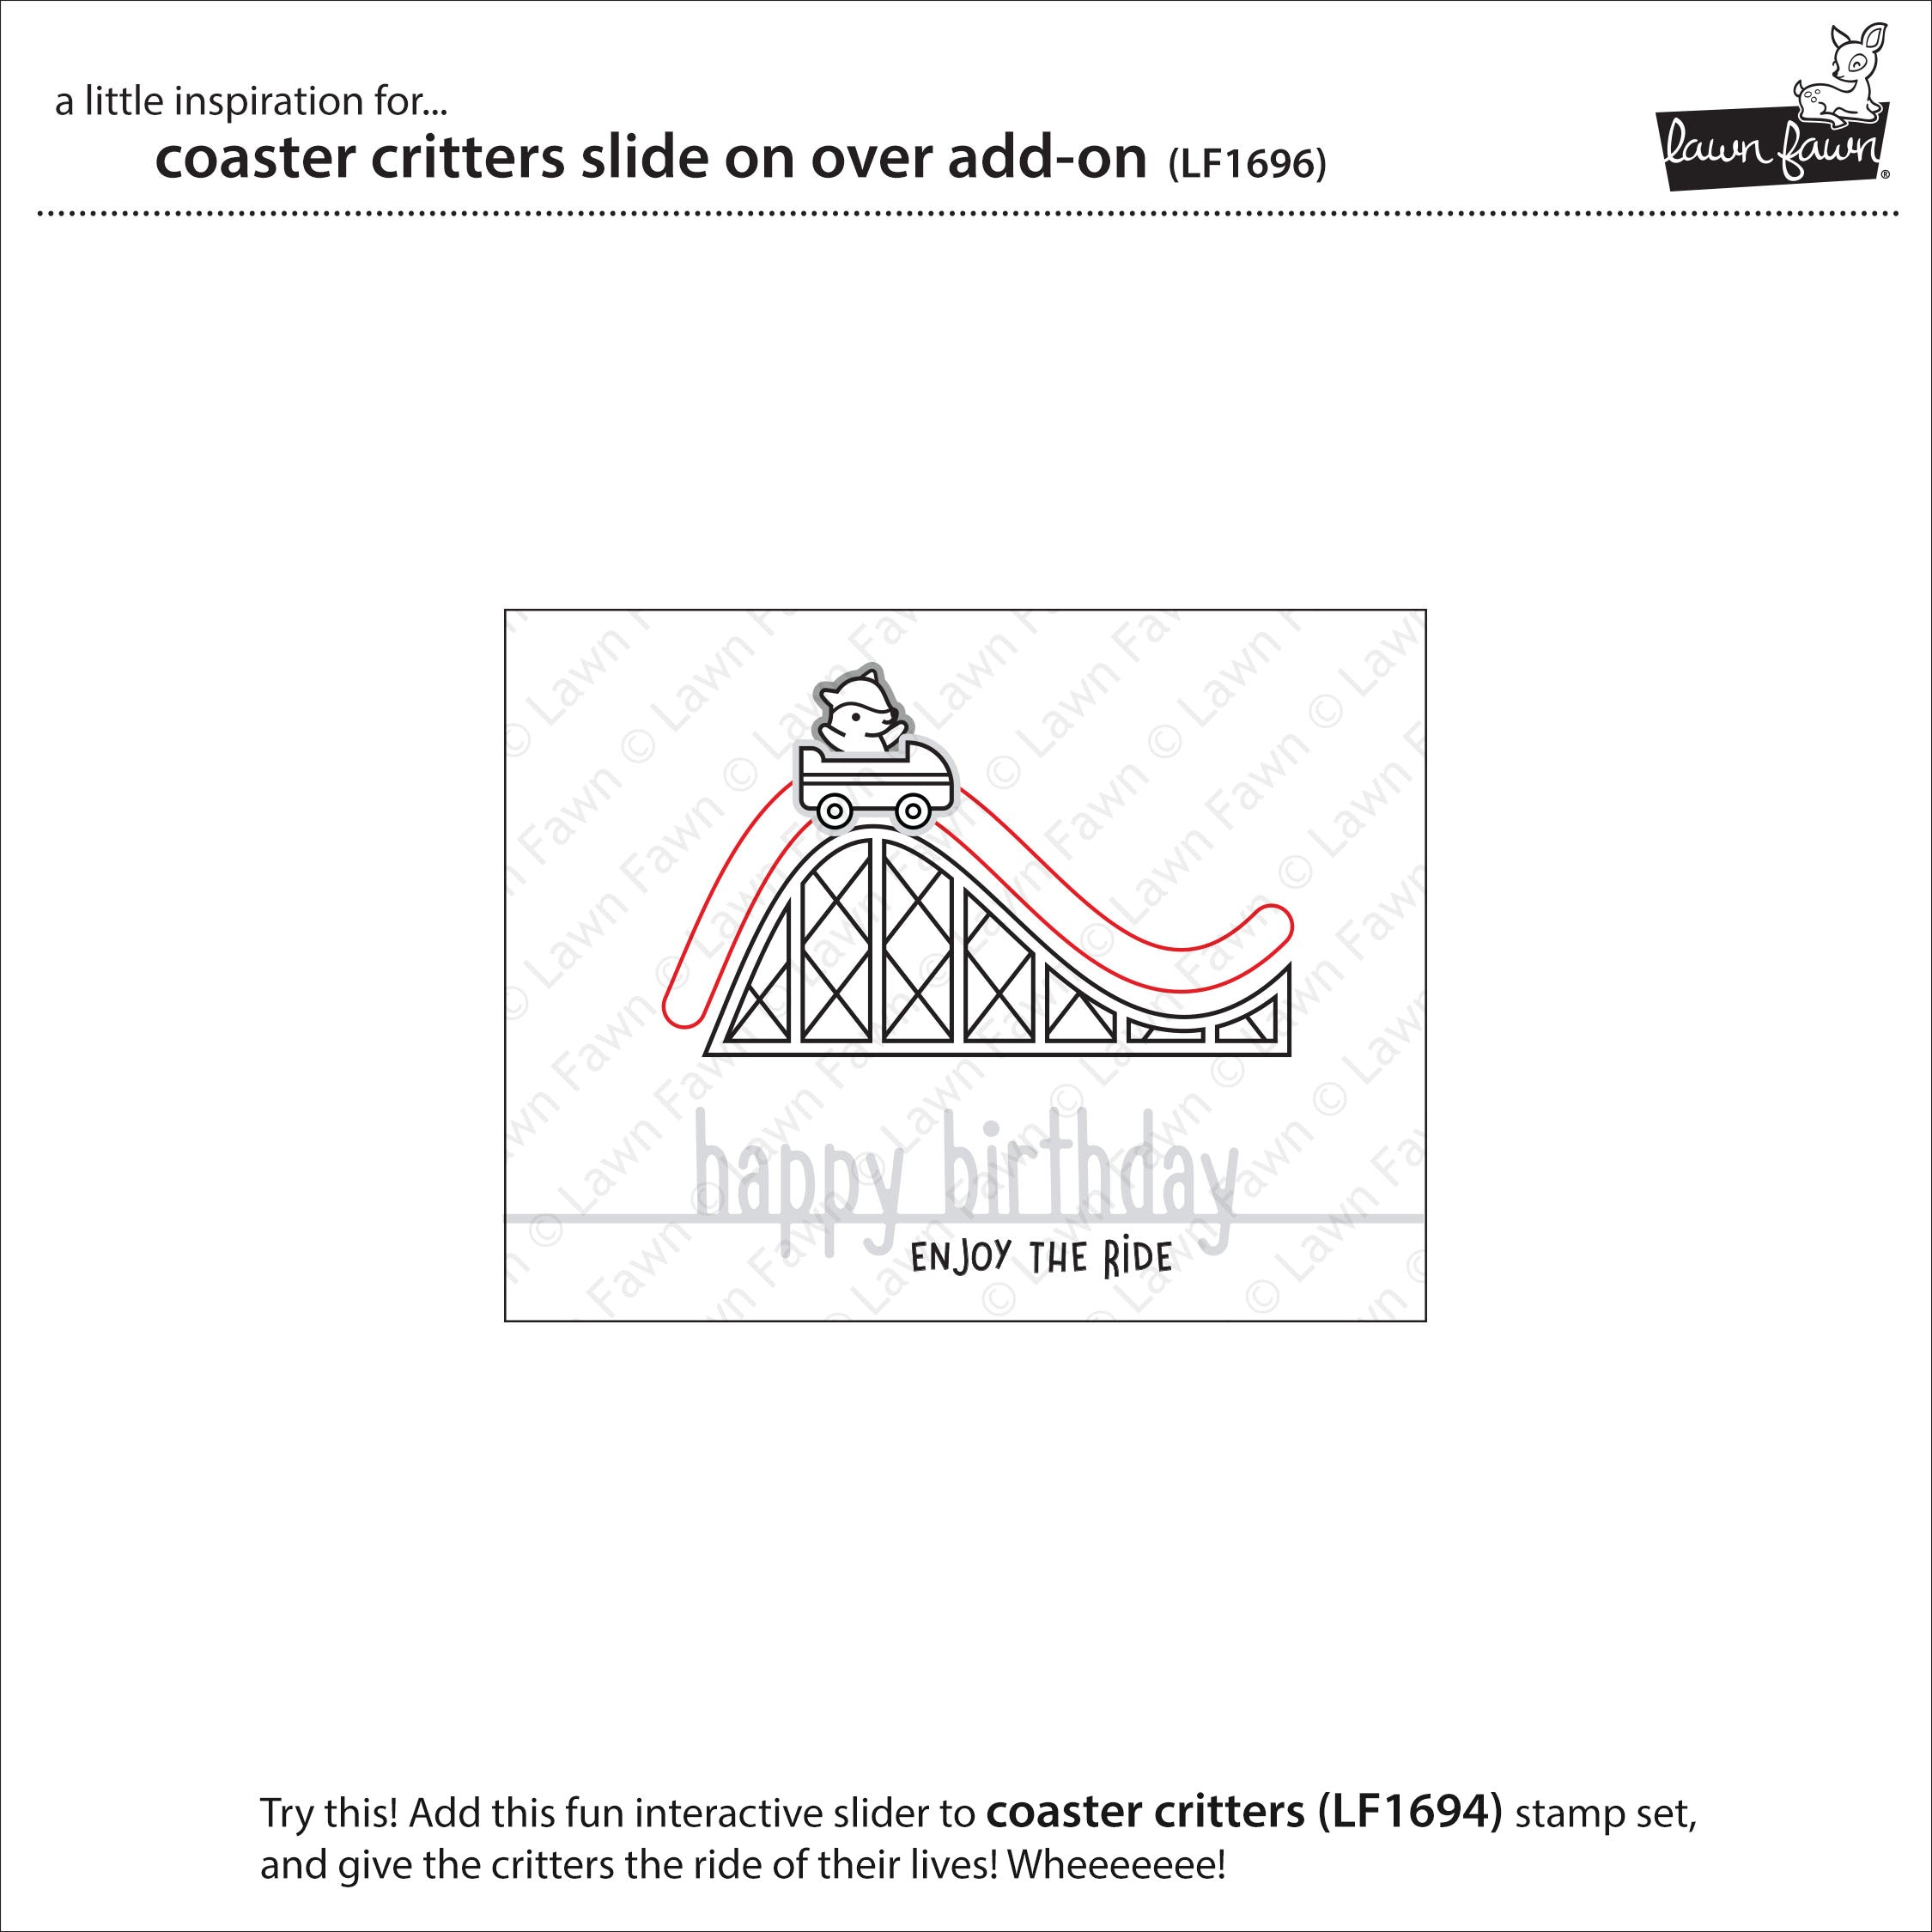 coaster critters slide on over add-on